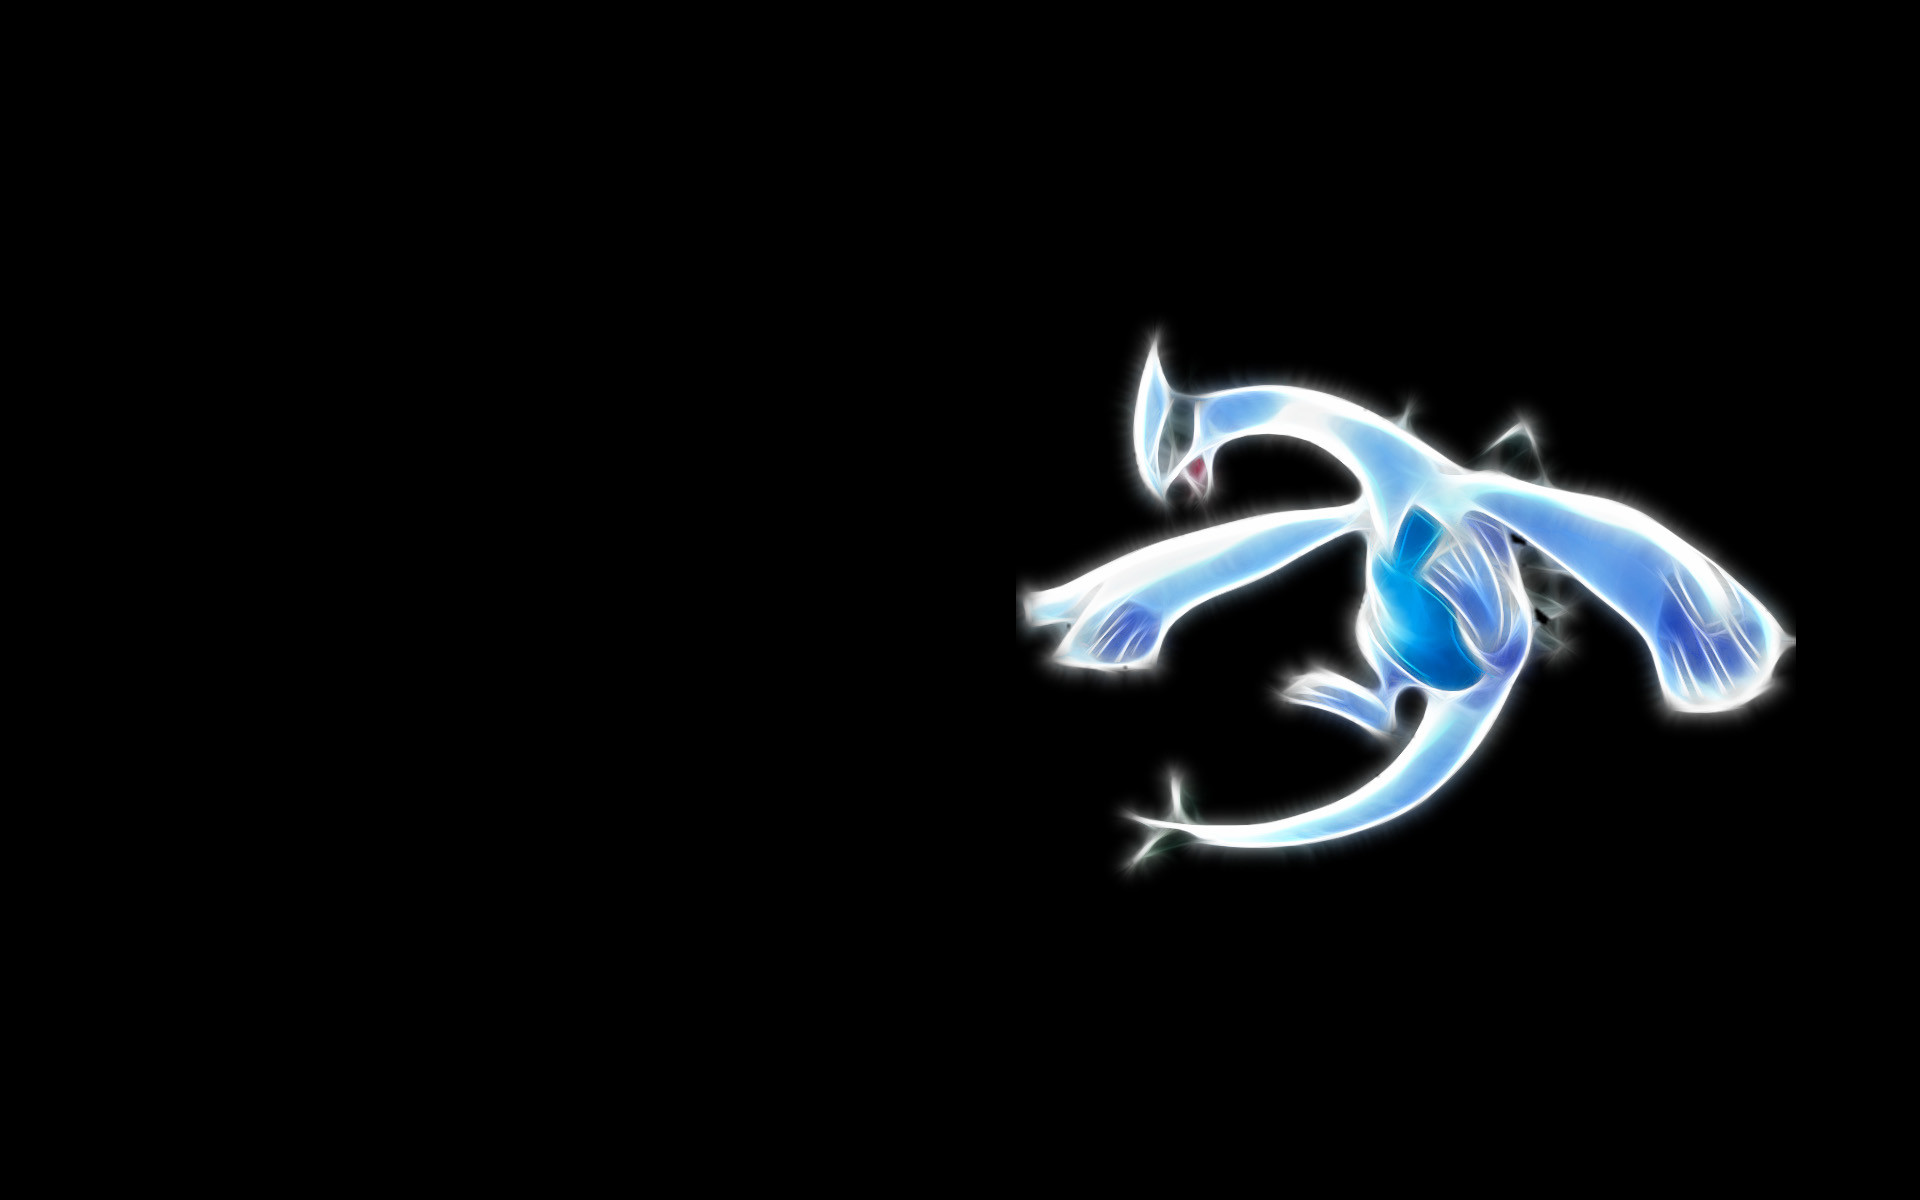 1920x1200 Anime - Pokémon Lugia (Pokémon) Legendary Pokémon Wallpaper